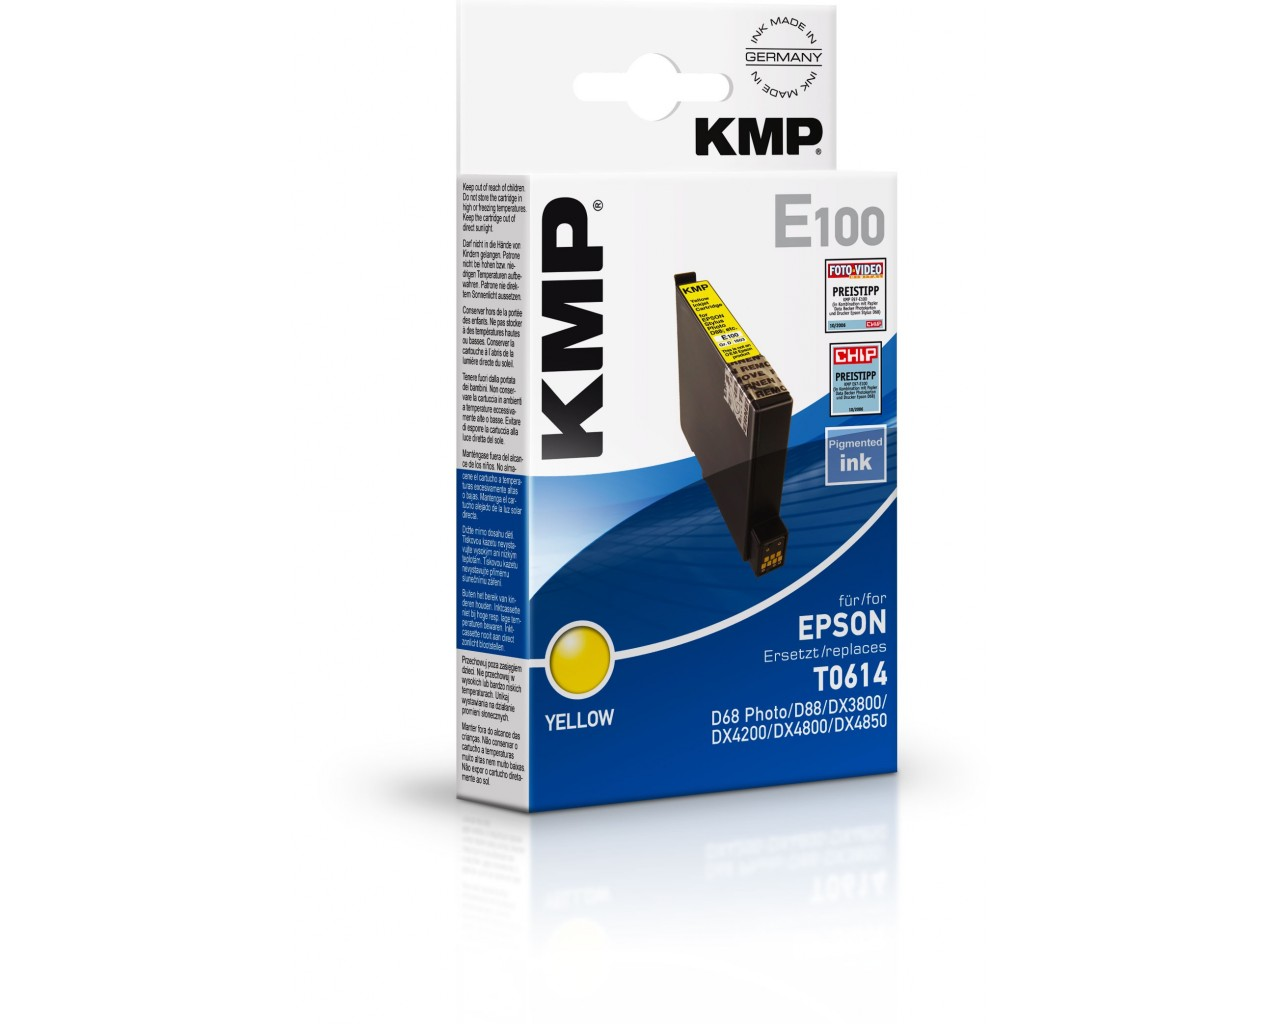 KMP Epson E100 ink cartridge žlutá 8ml